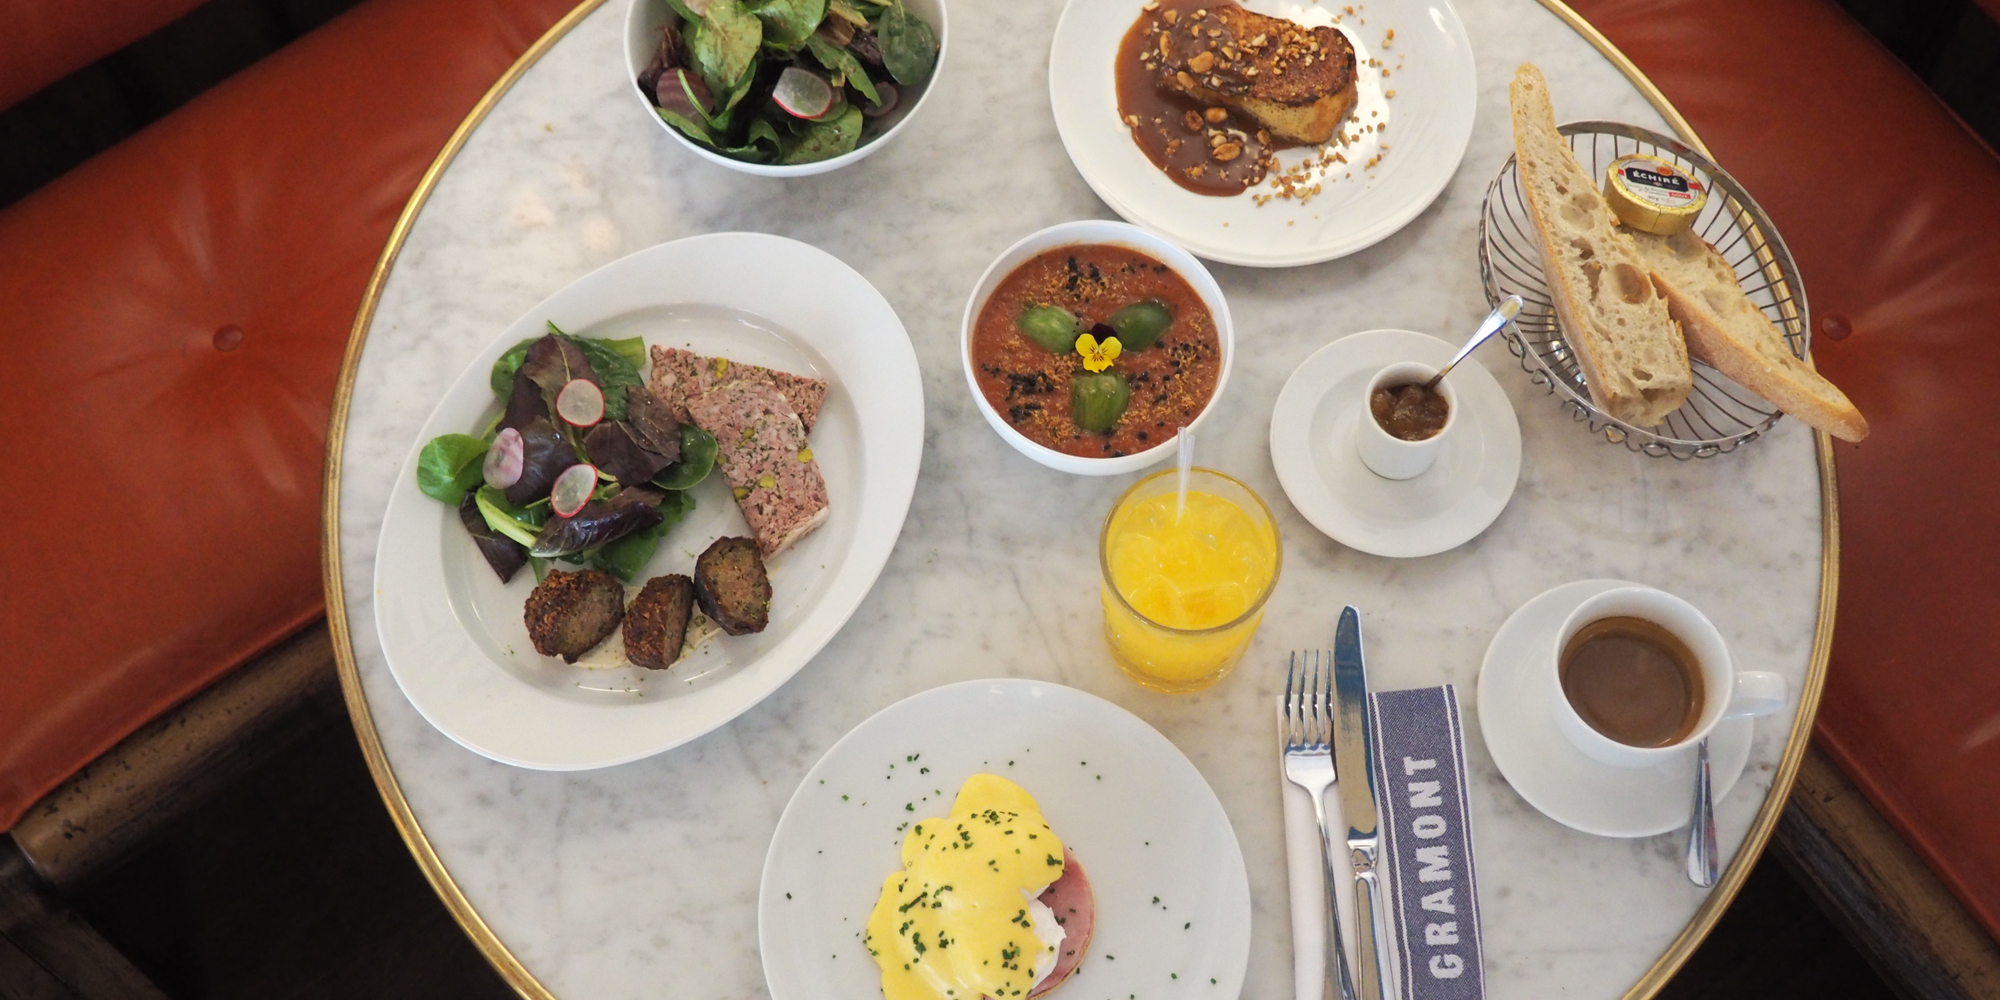 Brunch Le Gramont (75002 Paris)